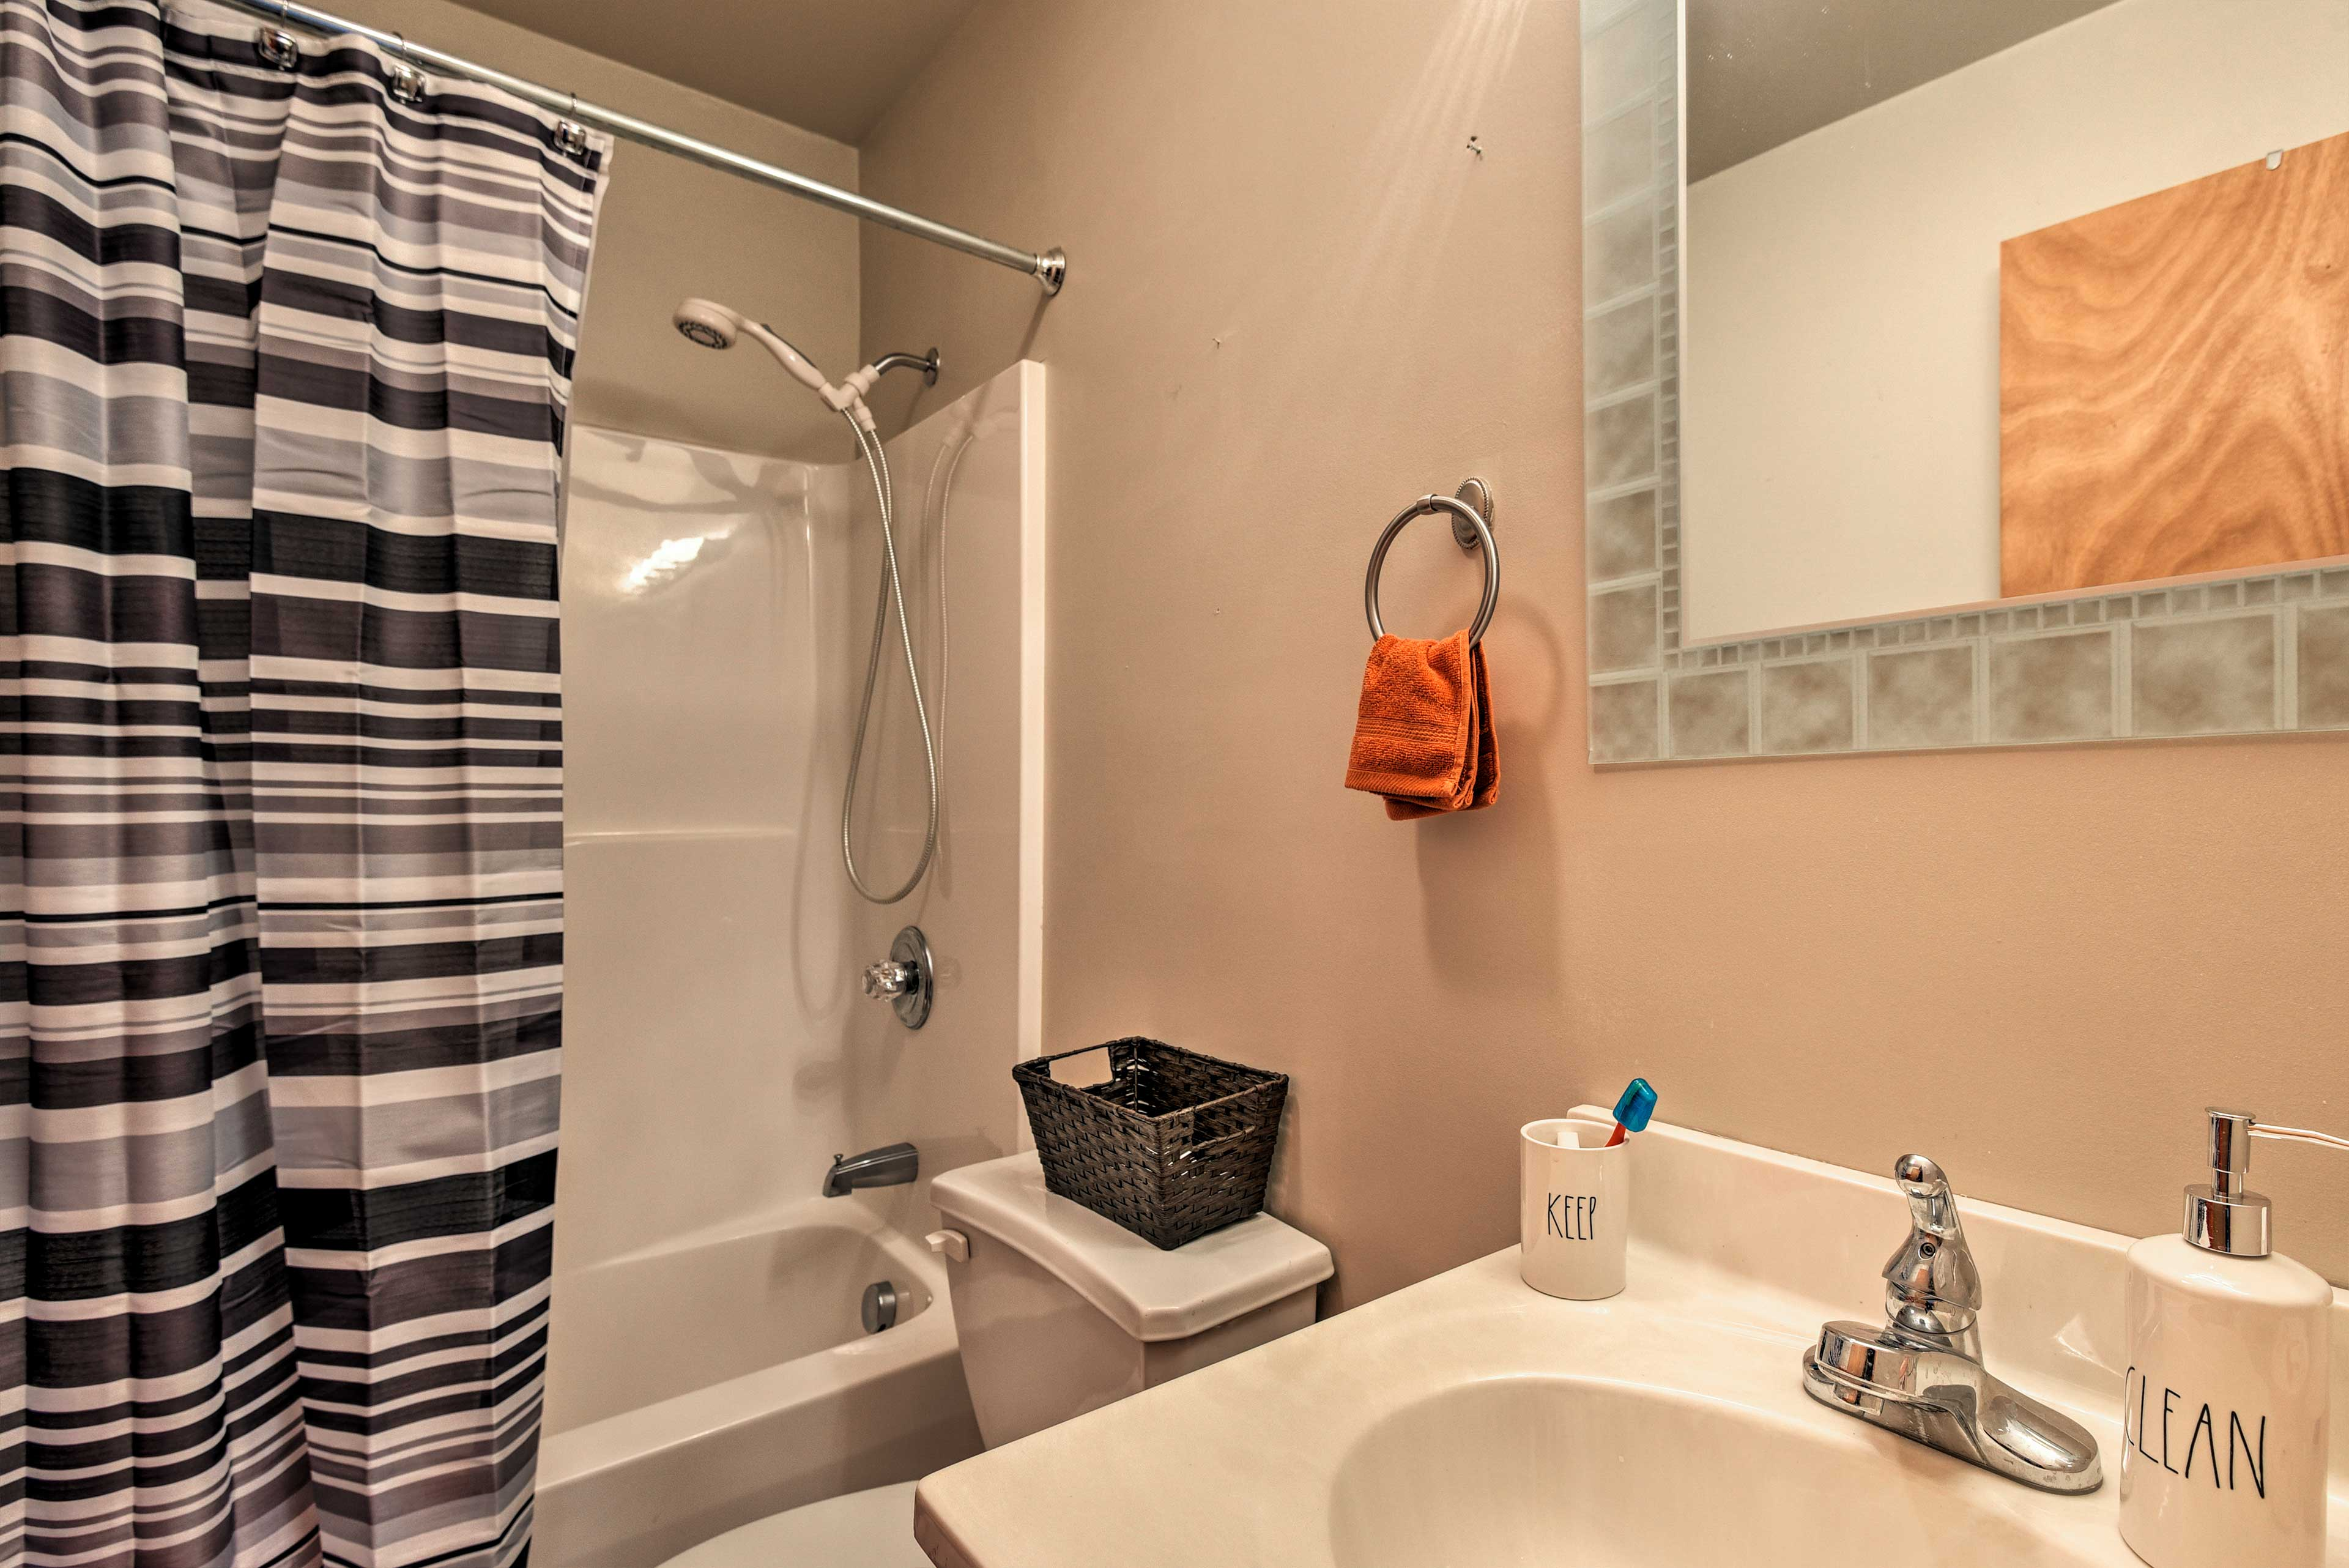 Use the shower/tub combo to wash up after a ski day.